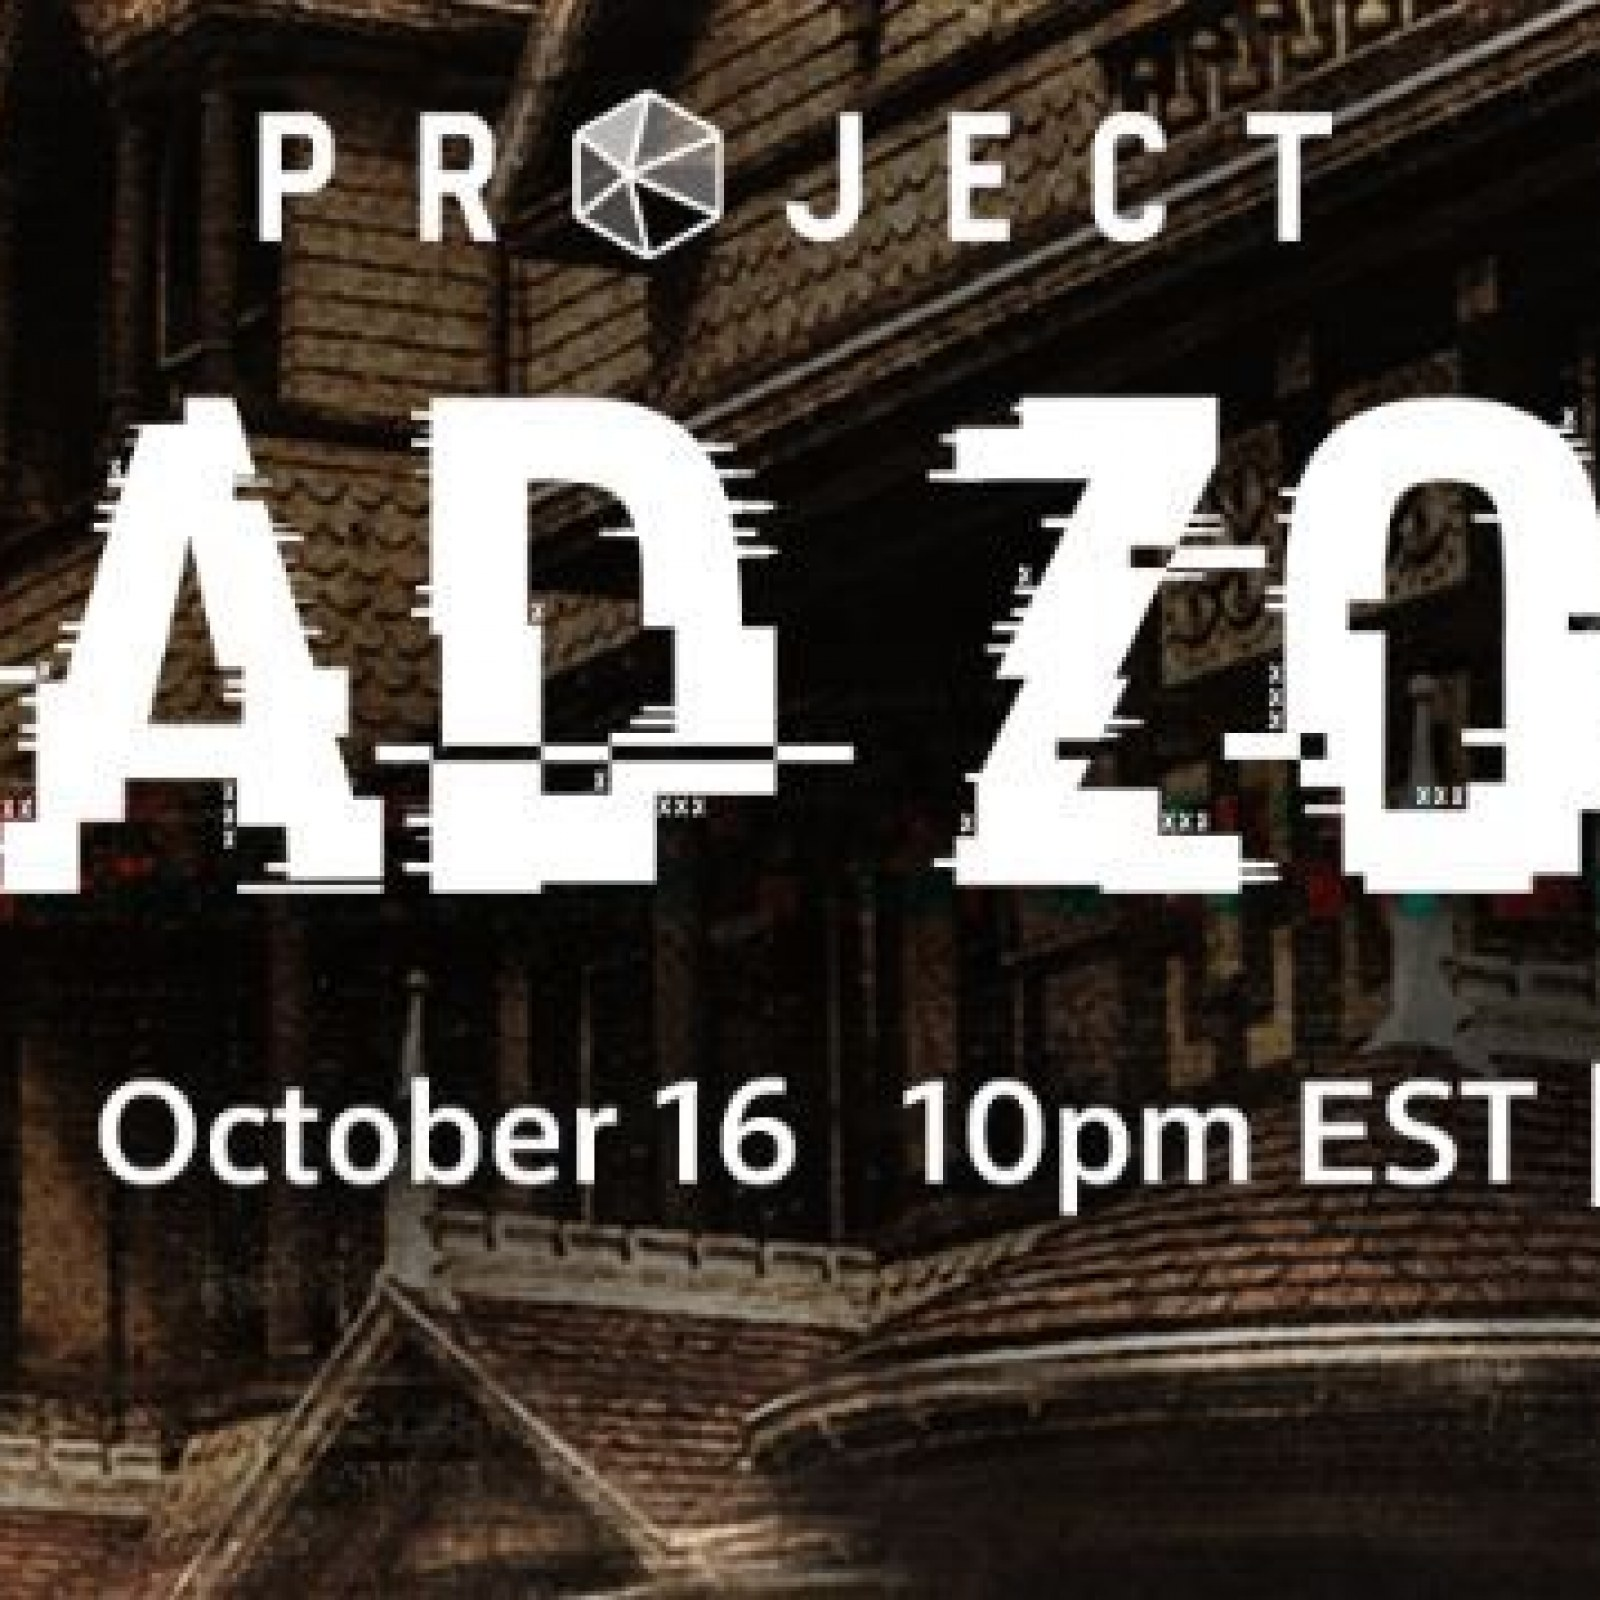 Xfinity and Twitter's Project Dead Zone Gives You the Chance